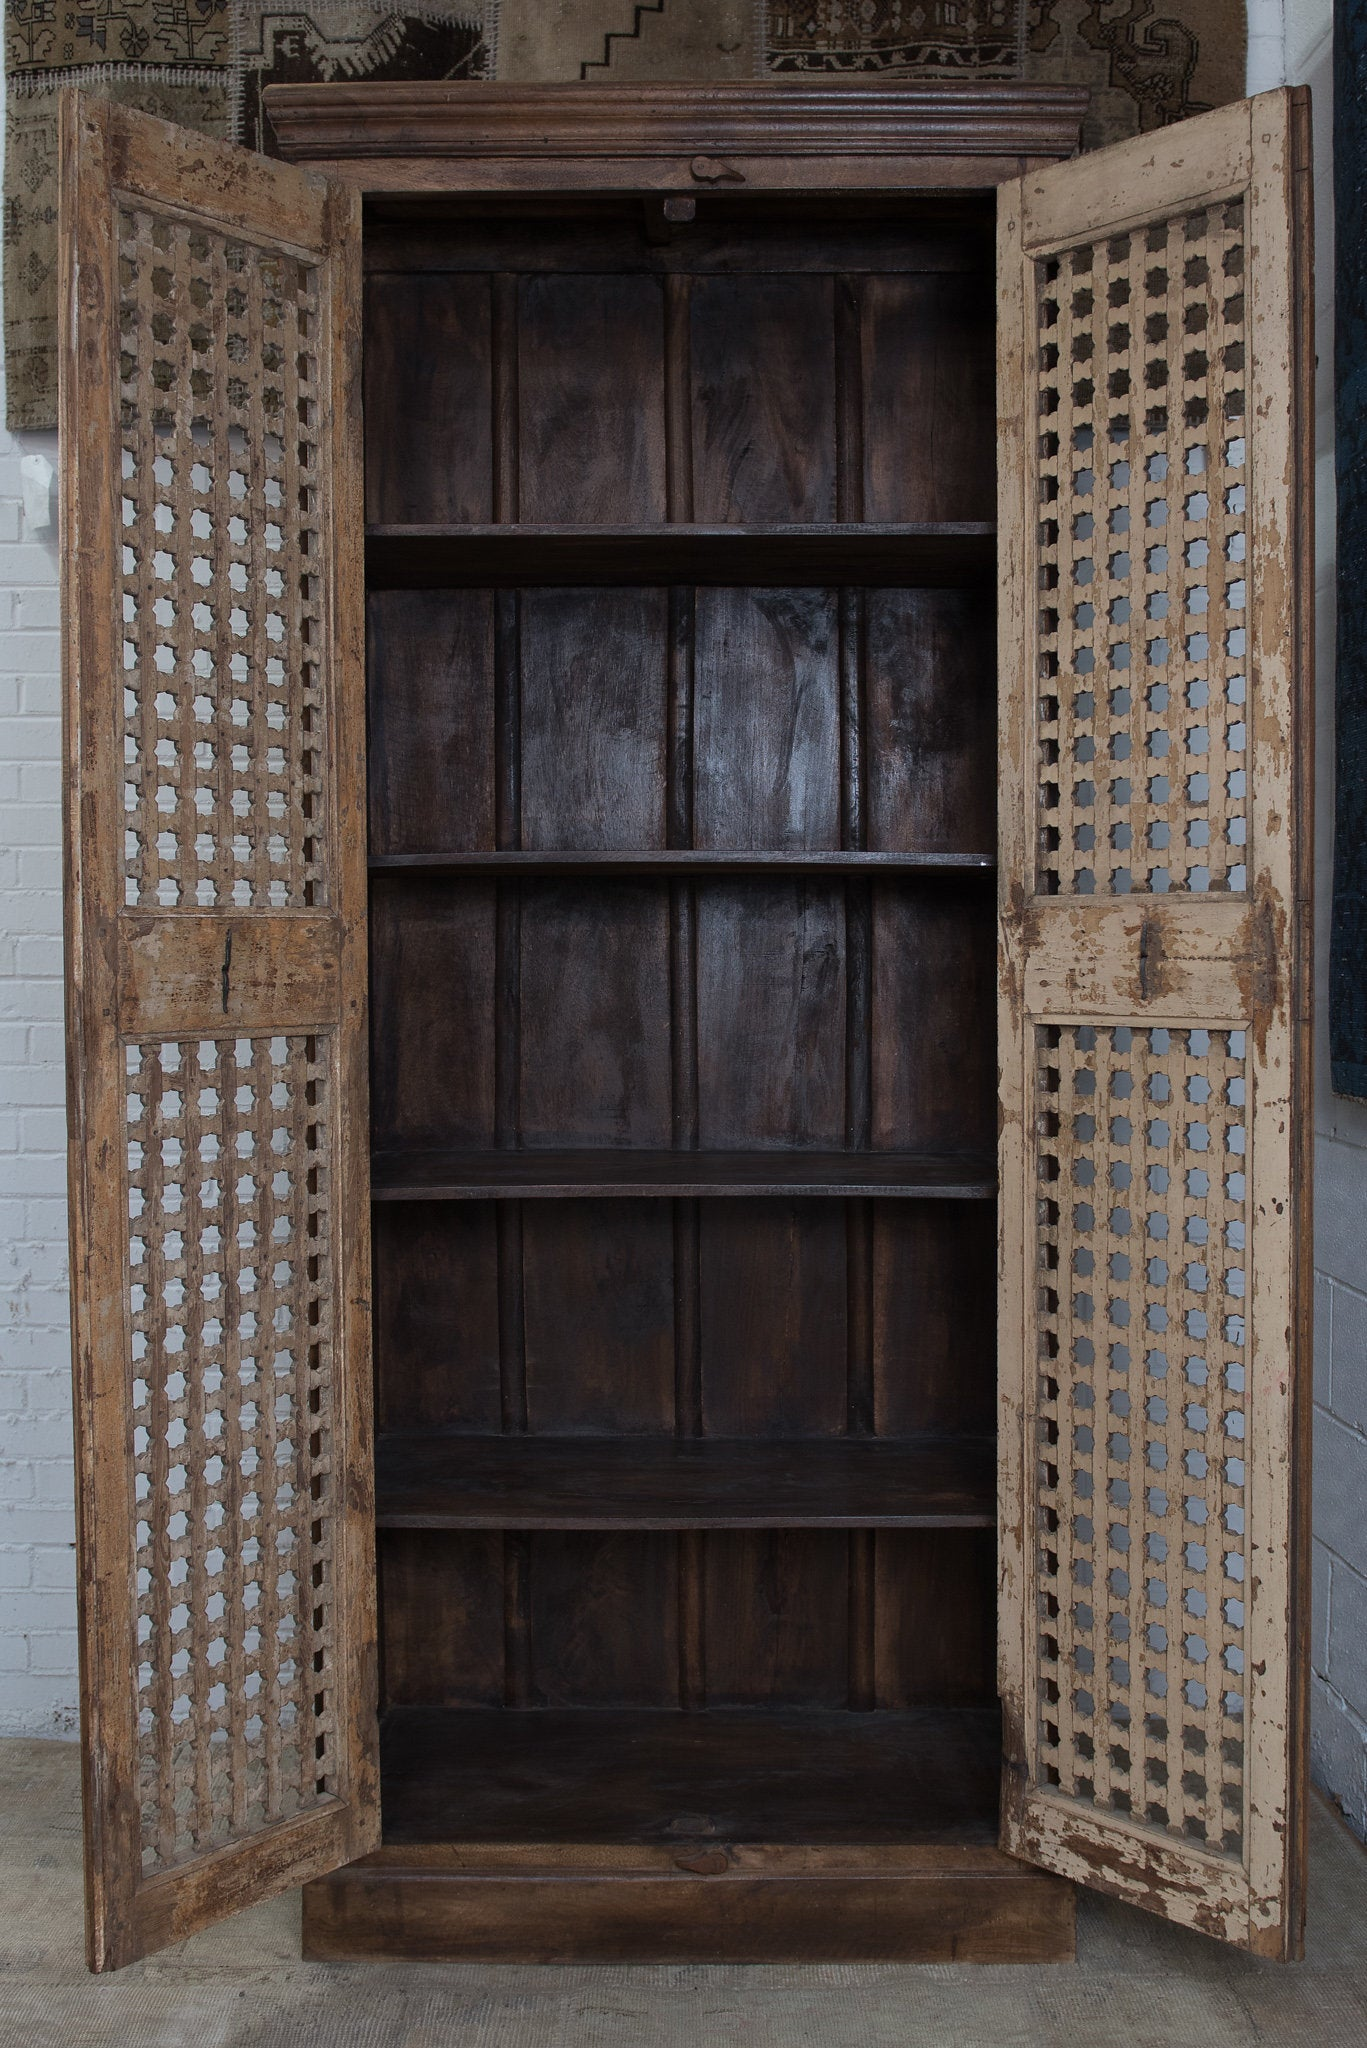 Teakwood bookcase/armoire made with antique garden doors - Teakwood Bookcase/armoire Made With Antique Garden Doors - Sunnyside TC